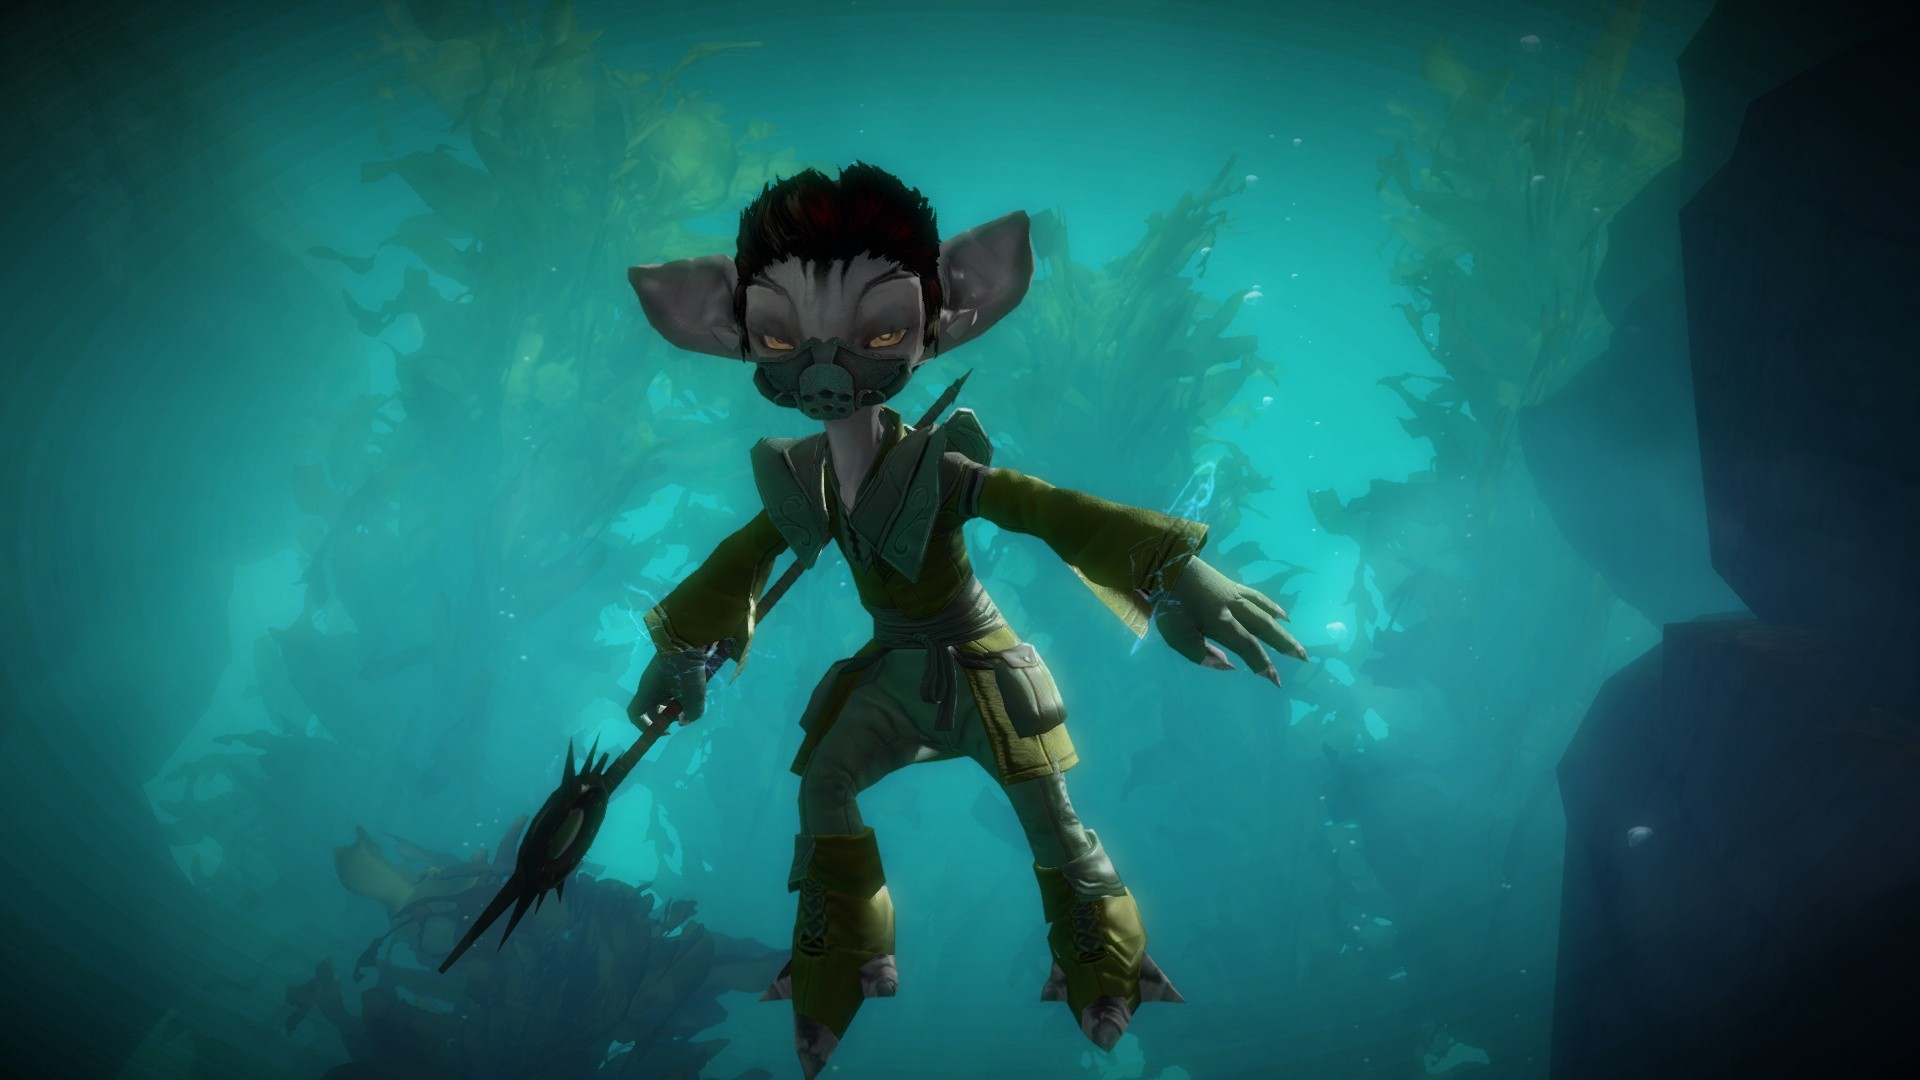 GW2-Deep Blue Sea